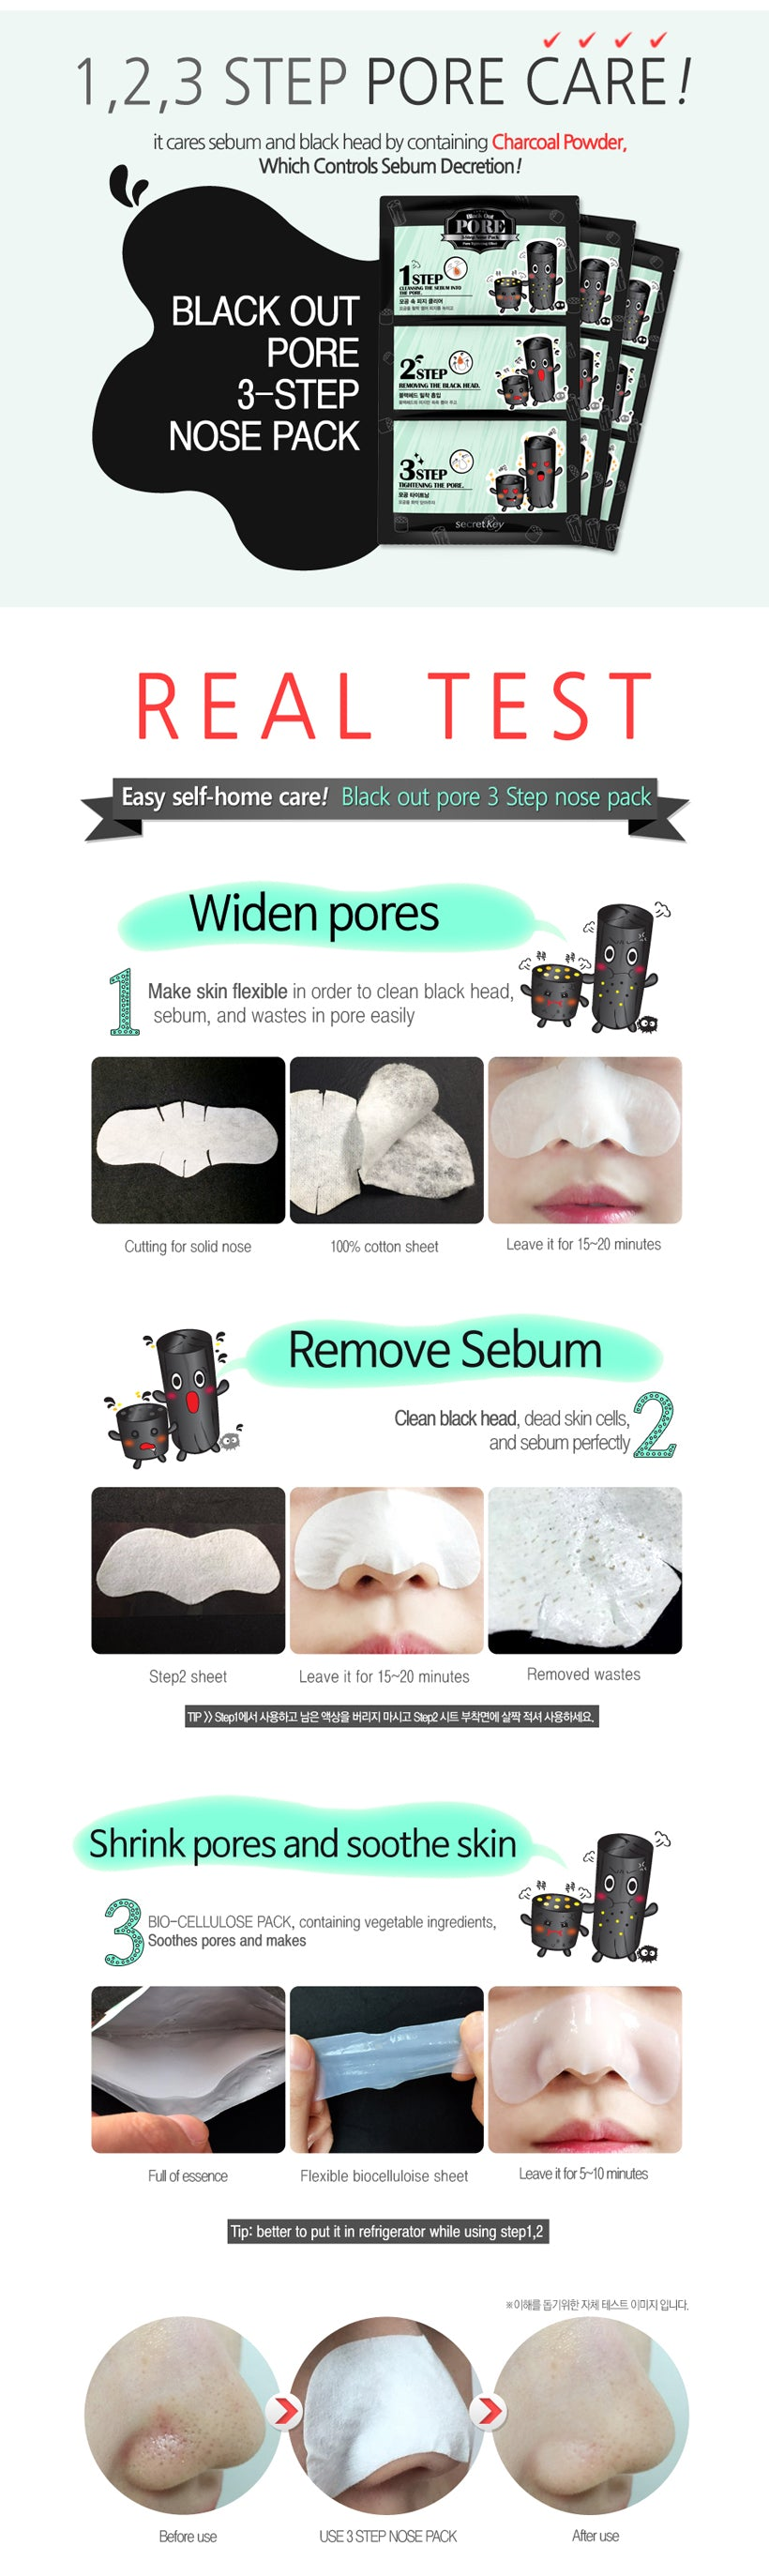 Black Out Pore 3-Step Nose Pack - 1 Sheet